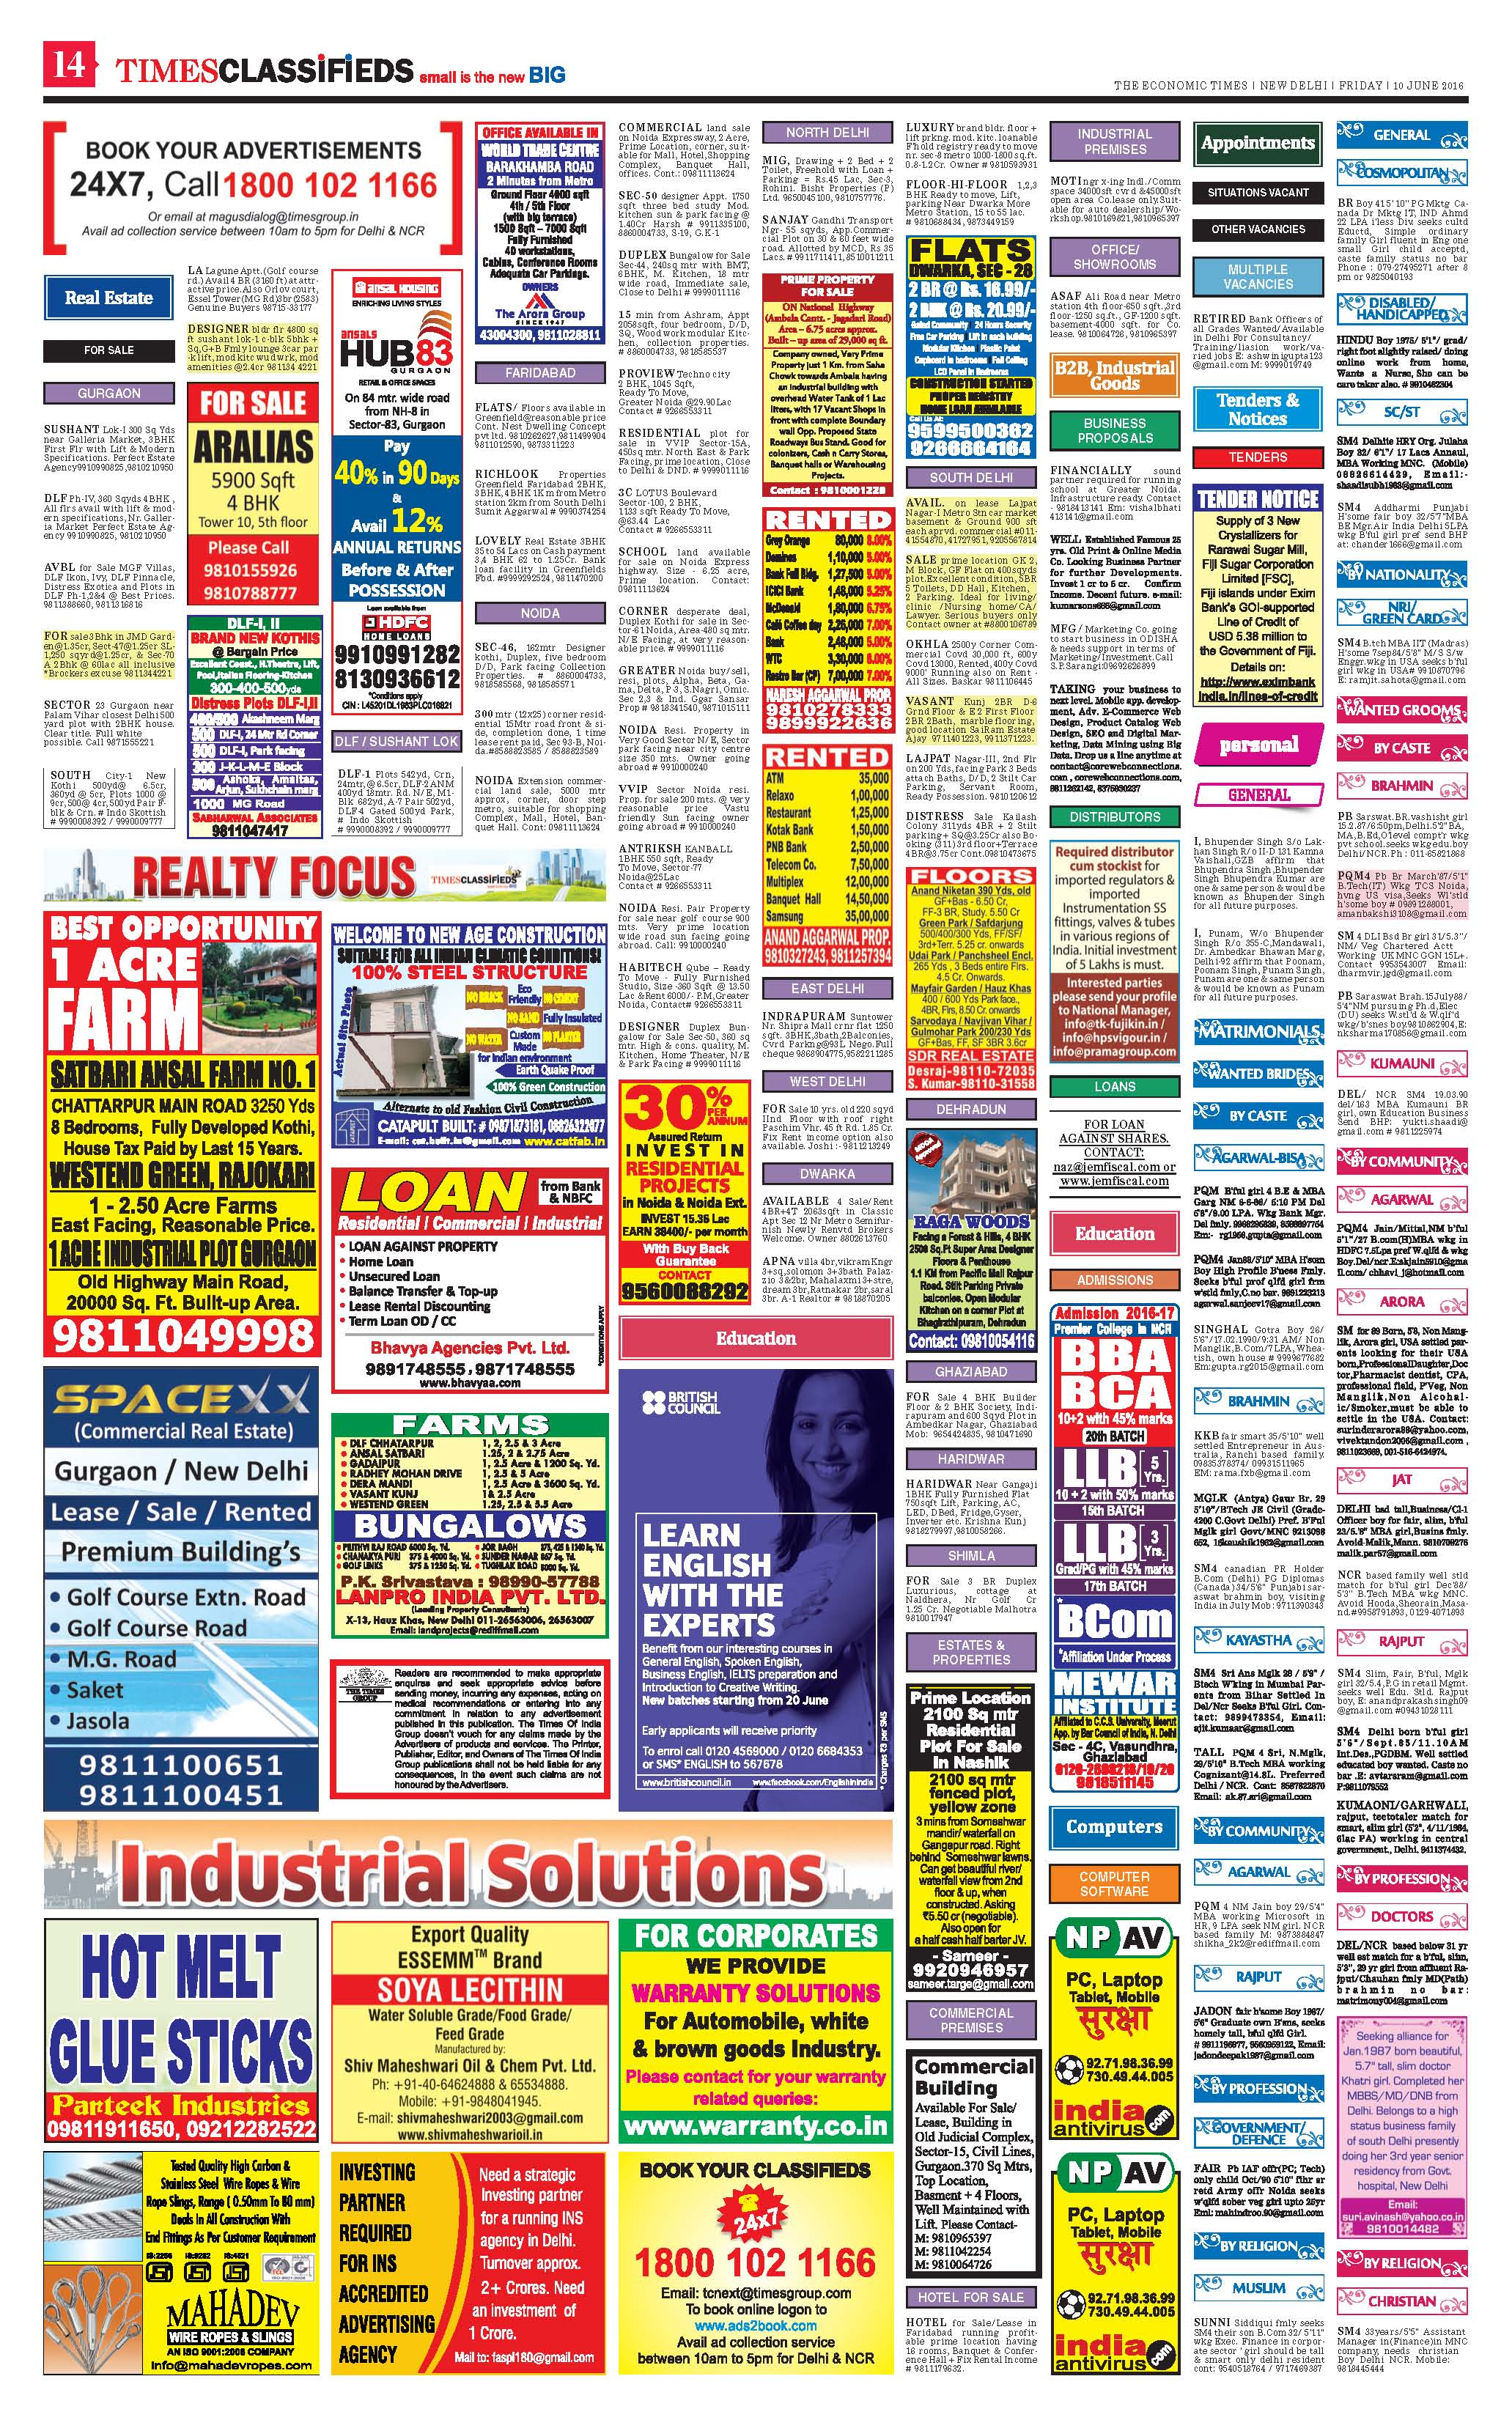 Economic Times Classified Ad Rates